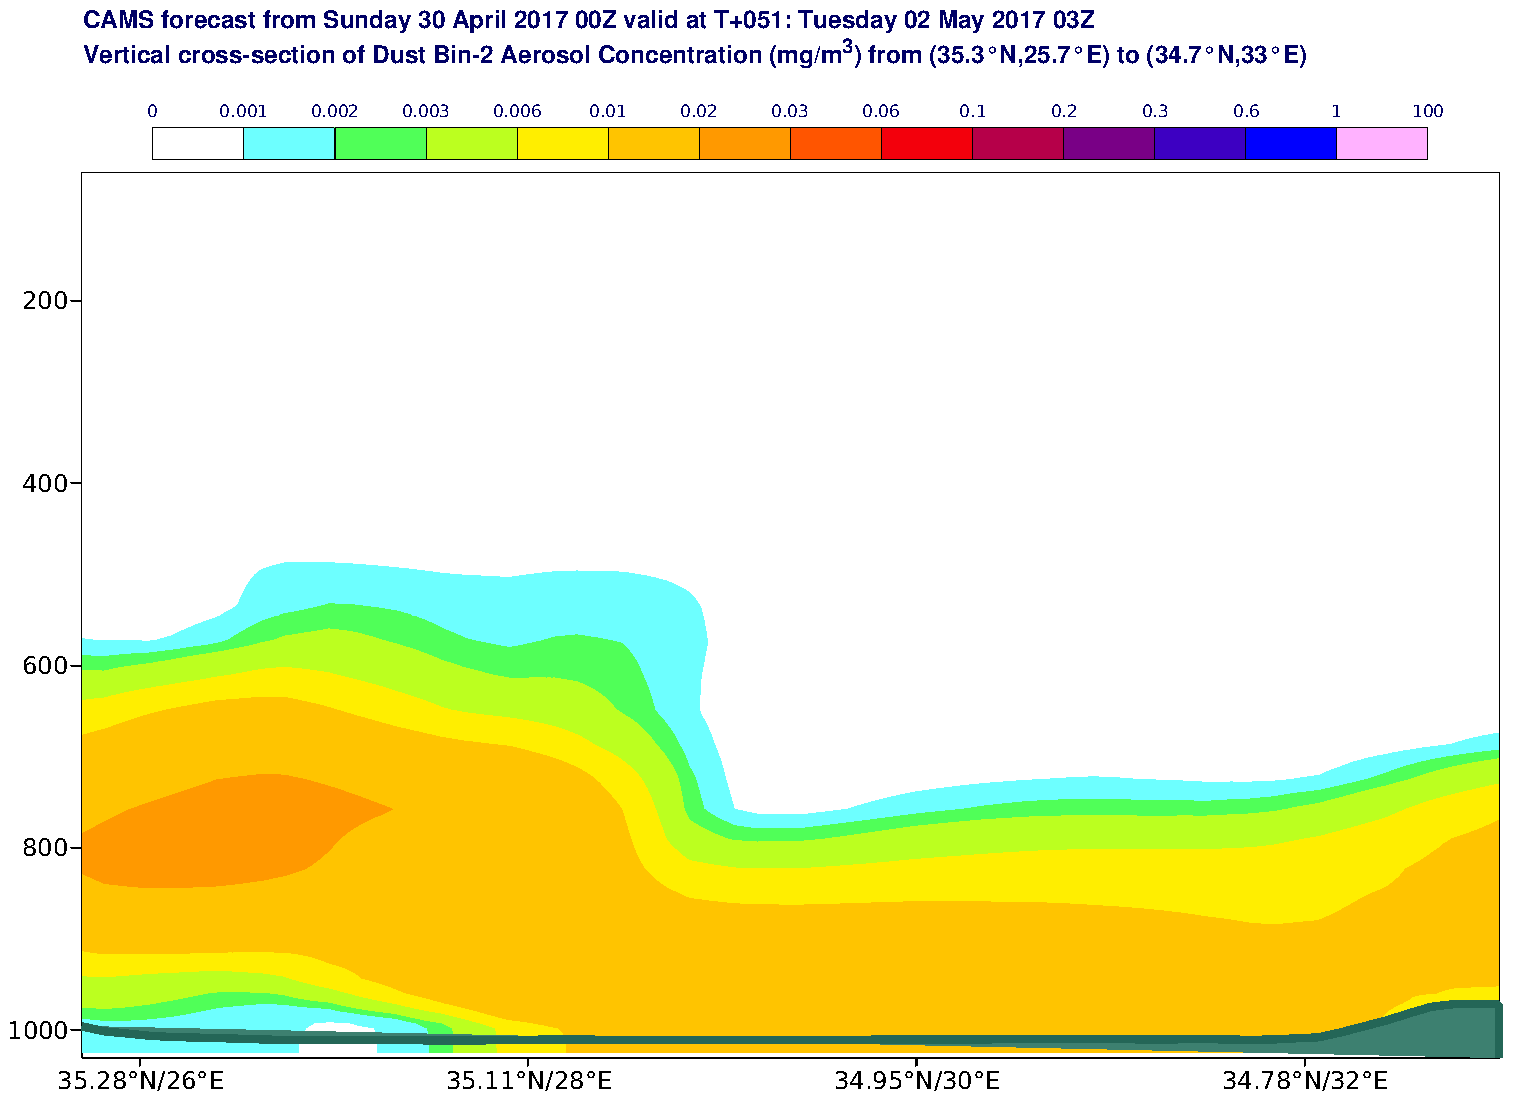 Vertical cross-section of Dust Bin-2 Aerosol Concentration (mg/m3) valid at T51 - 2017-05-02 03:00